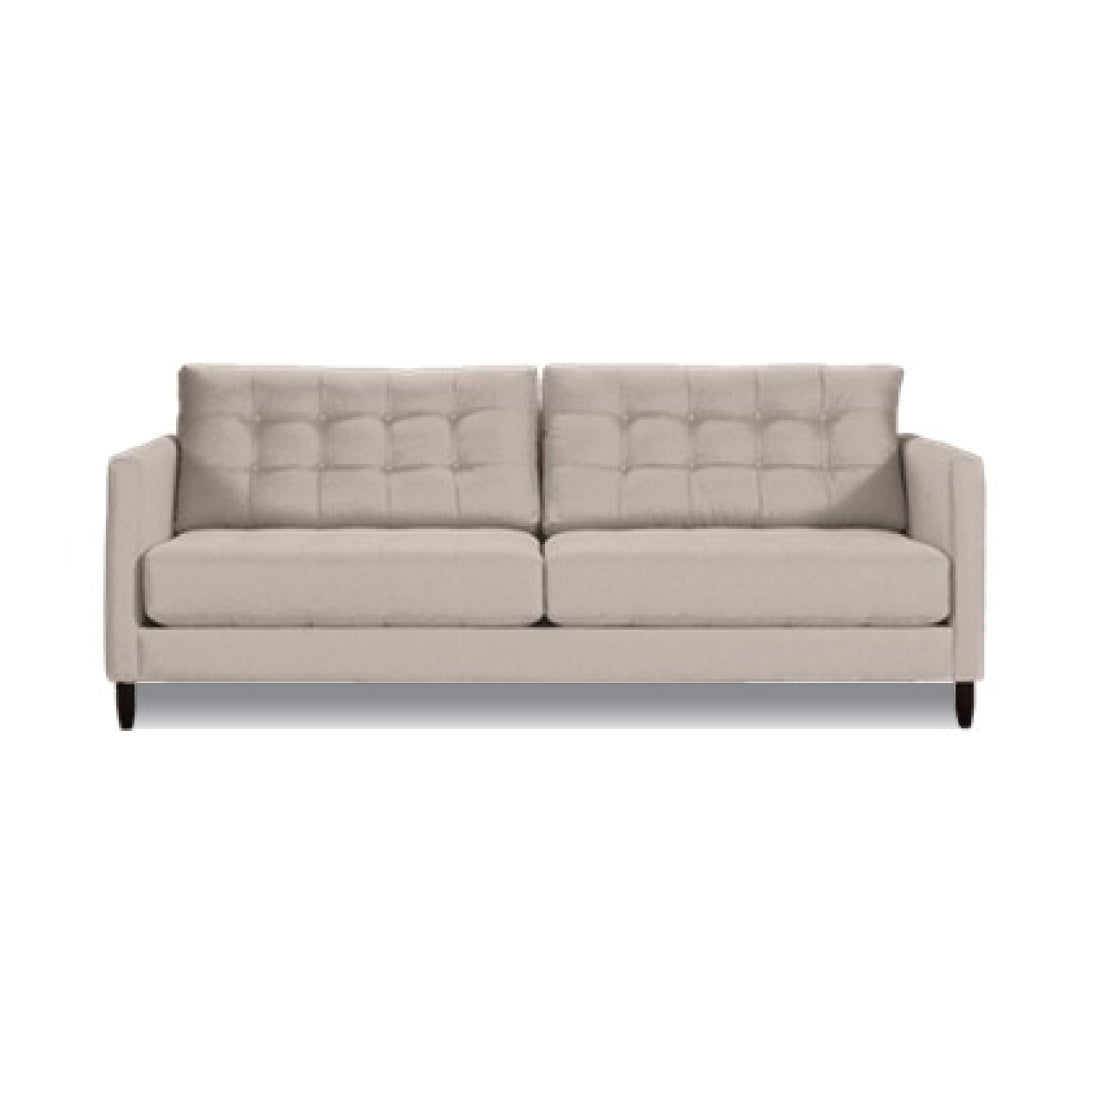 "James 70"" Apartment Sofa"